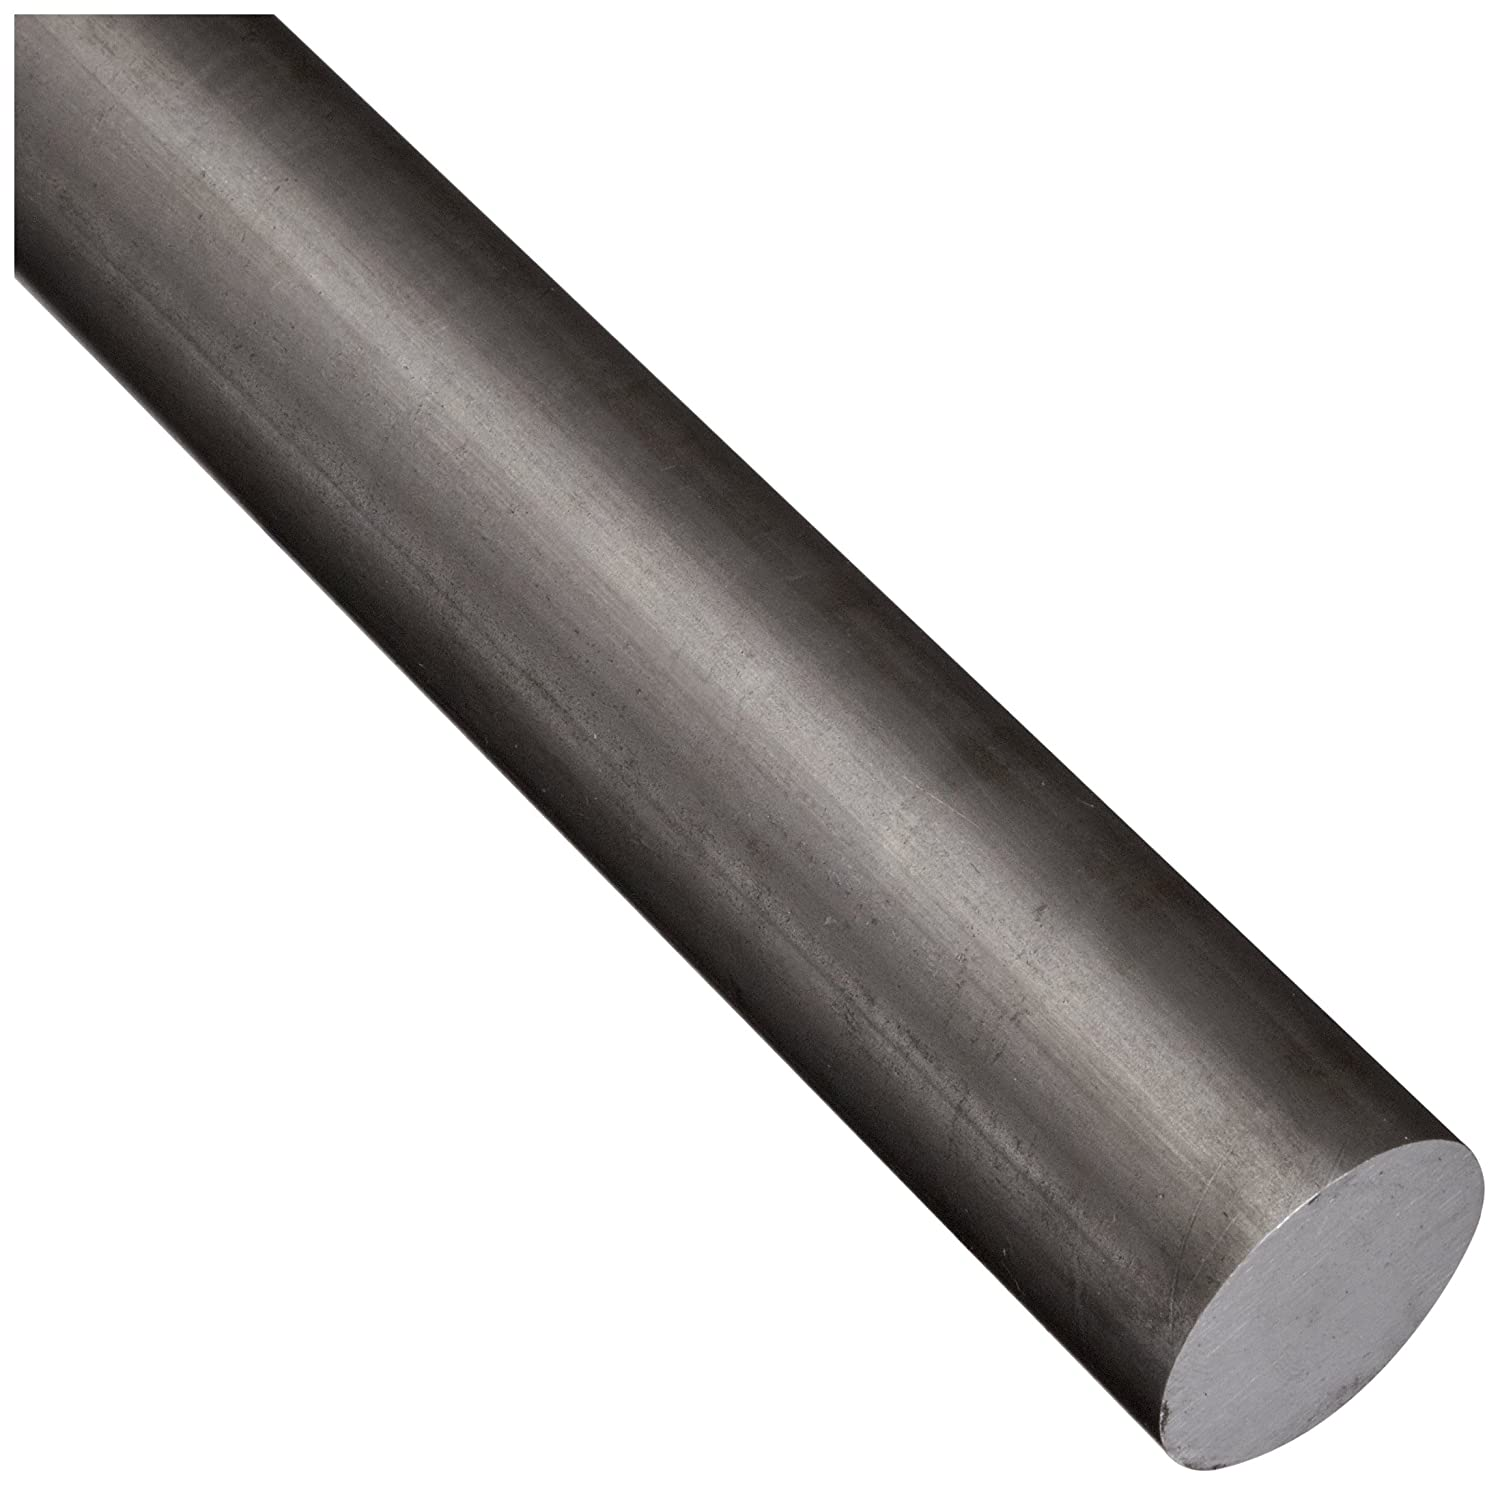 E52100 Alloy Steel Round Rod, Unpolished (Mill) Finish, Annealed, Standard Tolerance, Inch, AMS S-7420